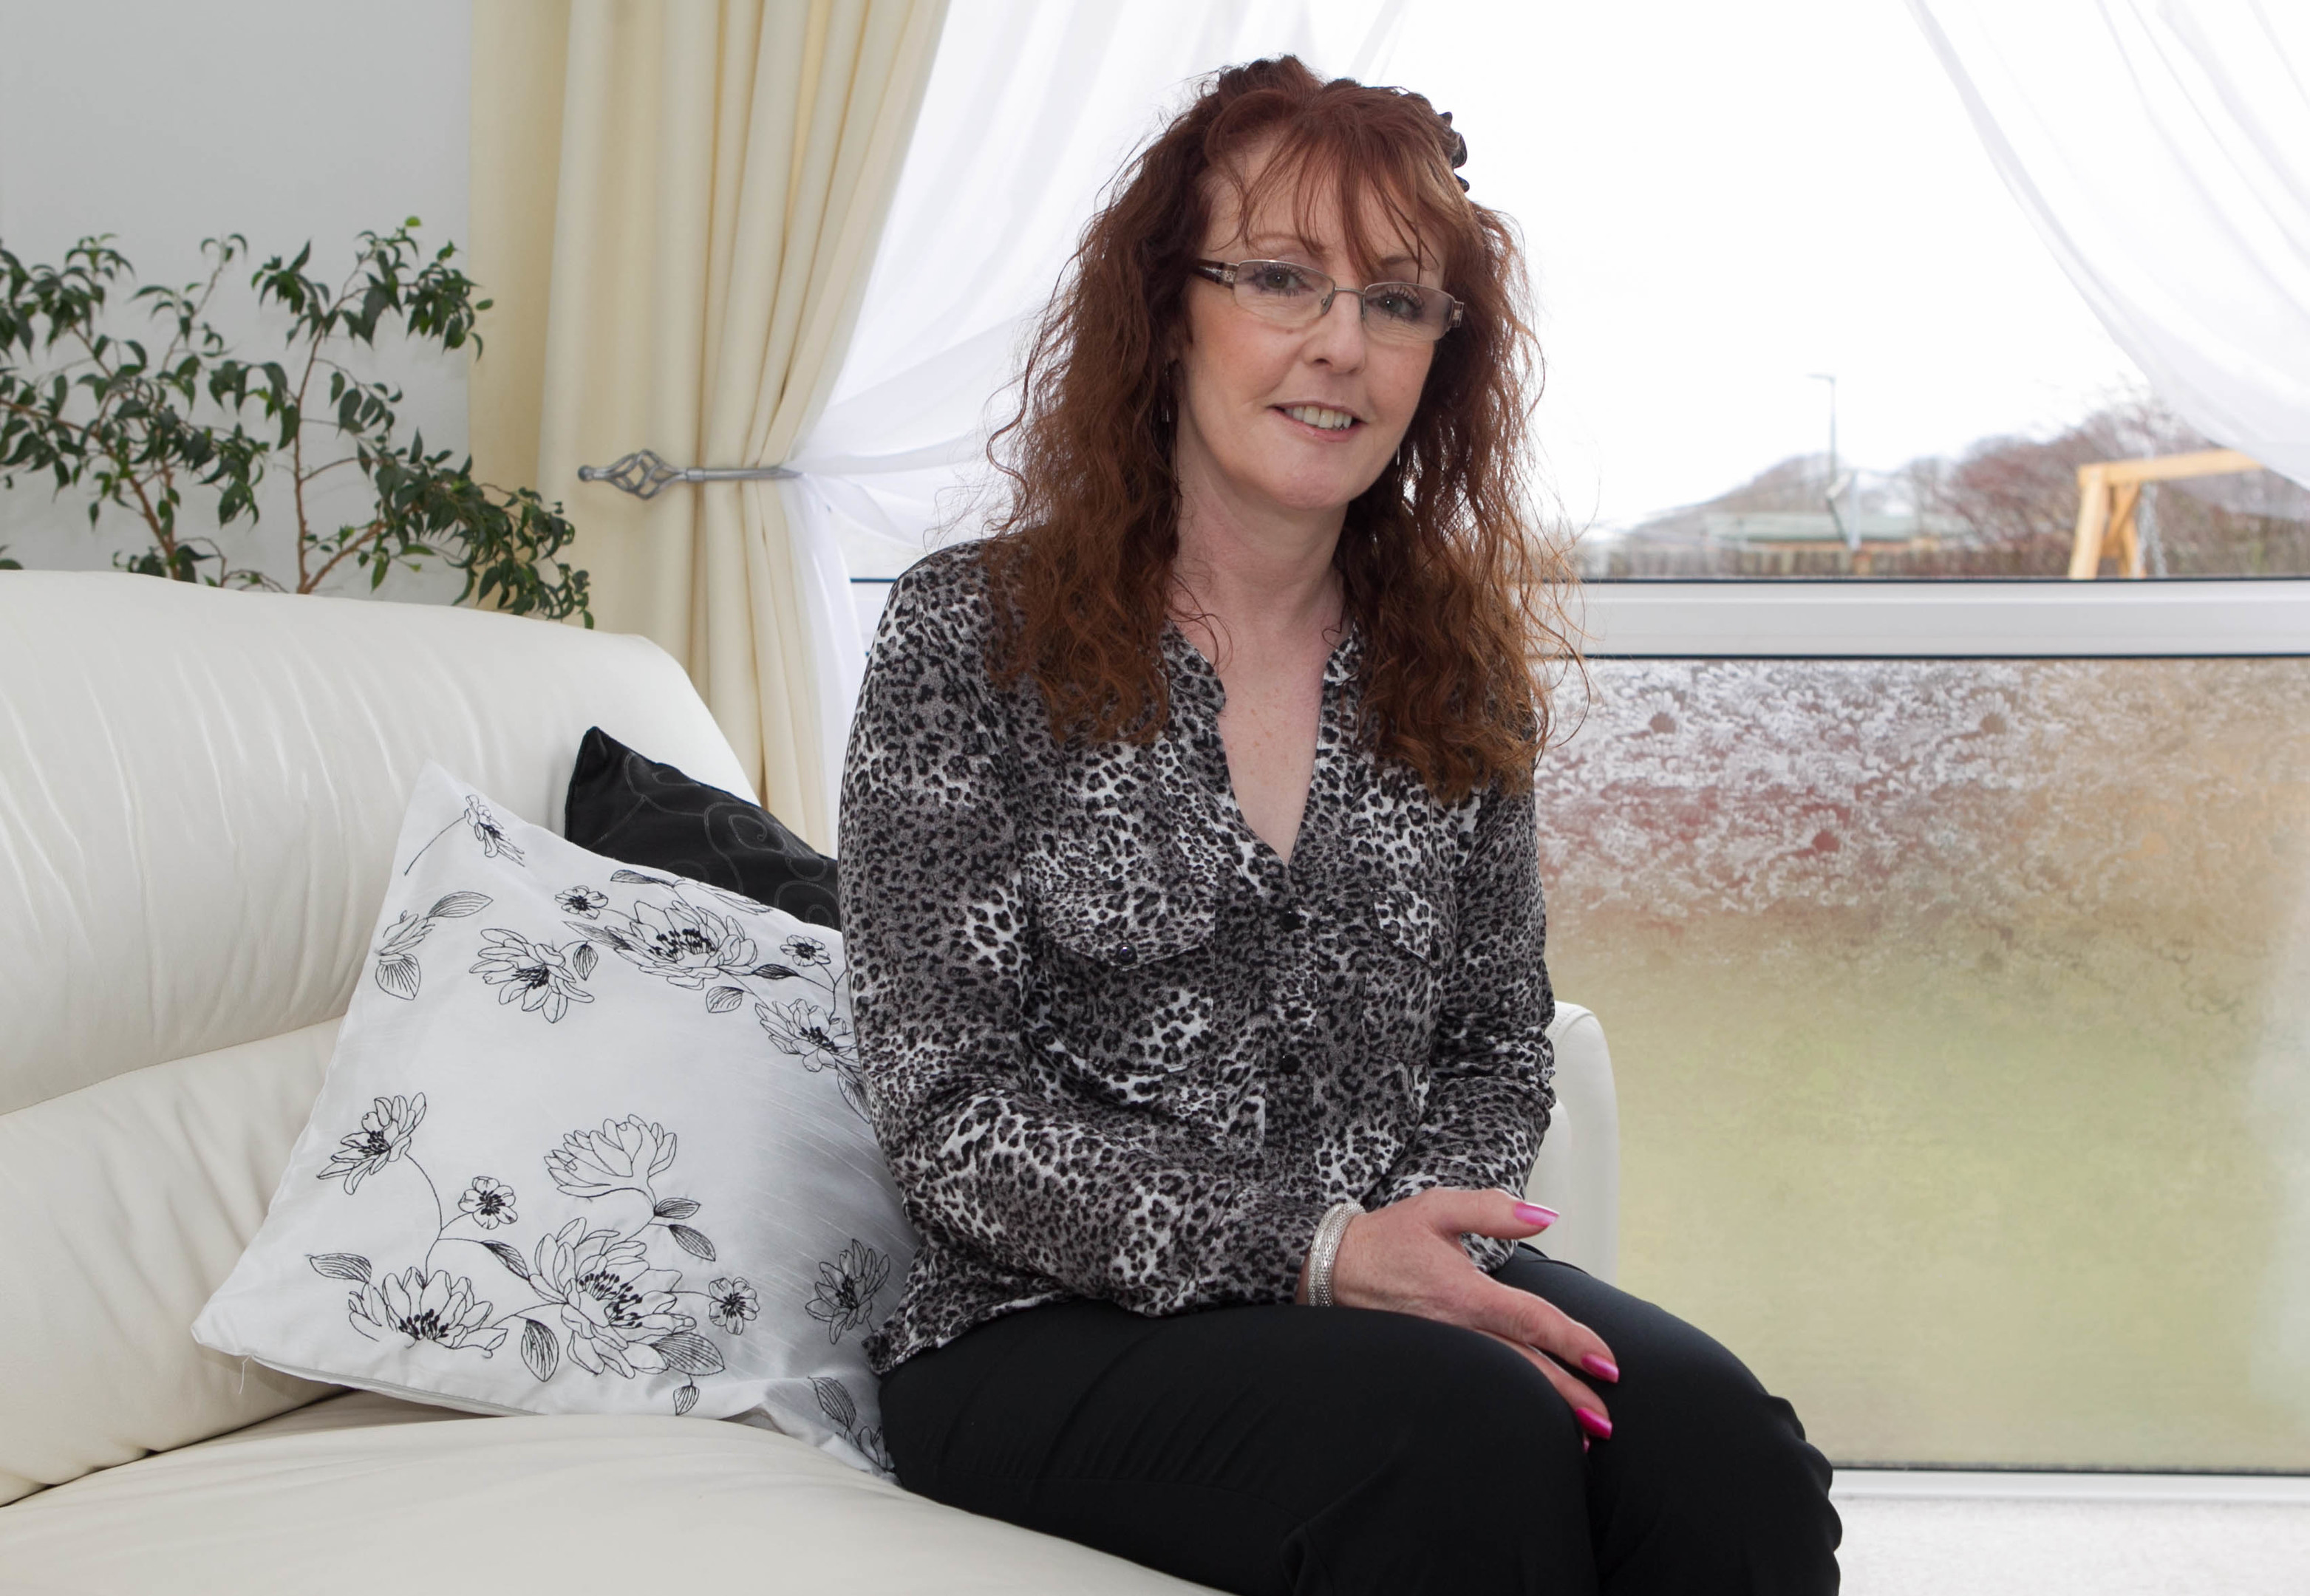 Jackie Silburn had difficulty paying for an easyJet holiday with a voucher from the airline